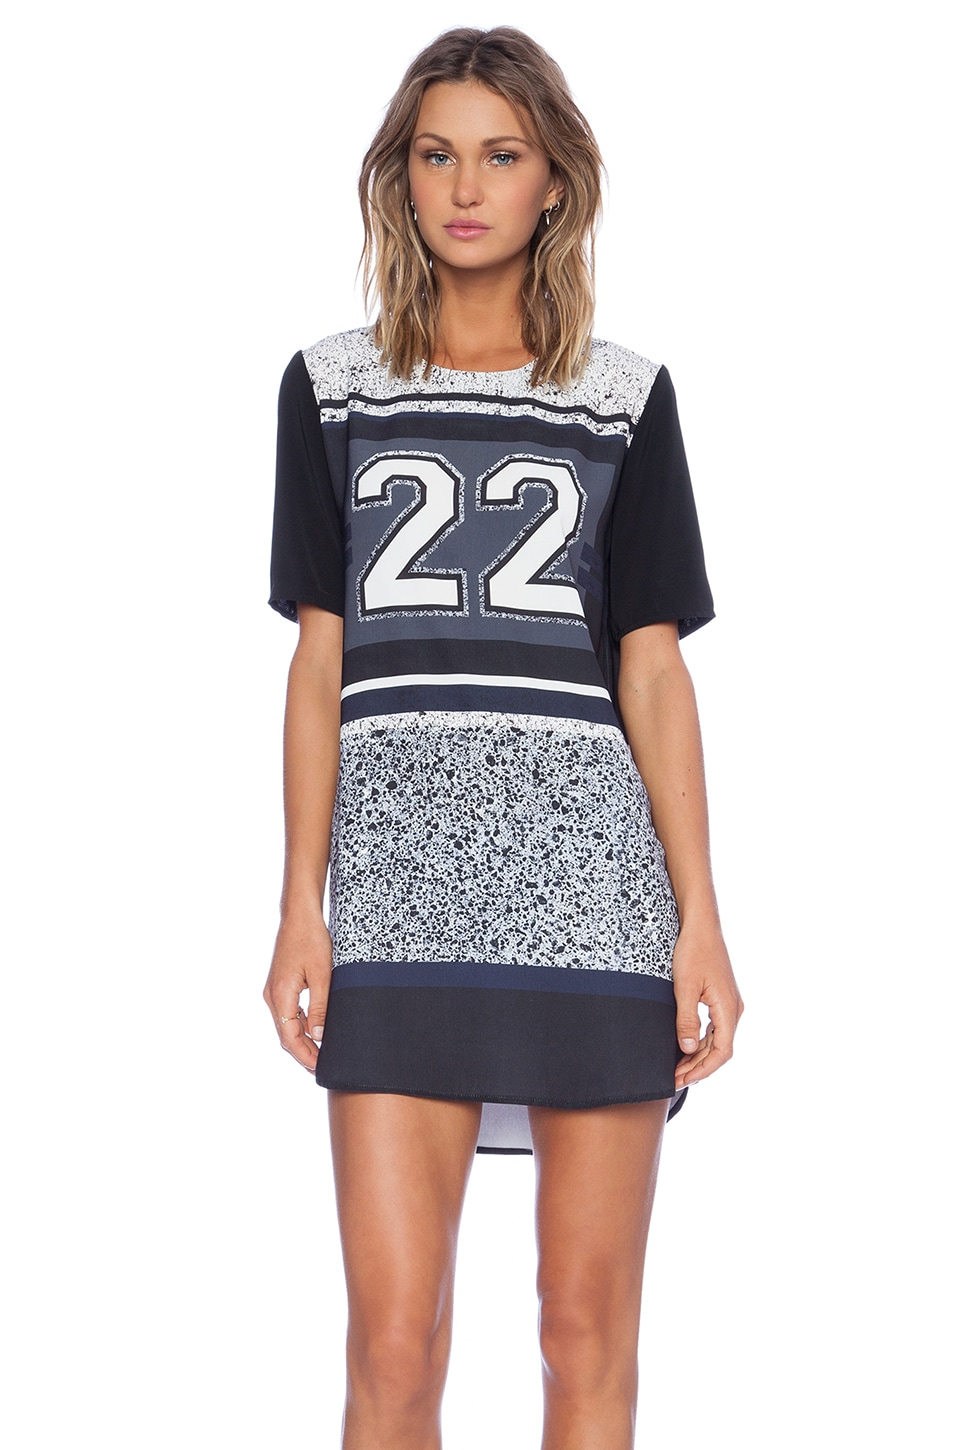 Finders Keepers Good Fortune Dress in 22 Print